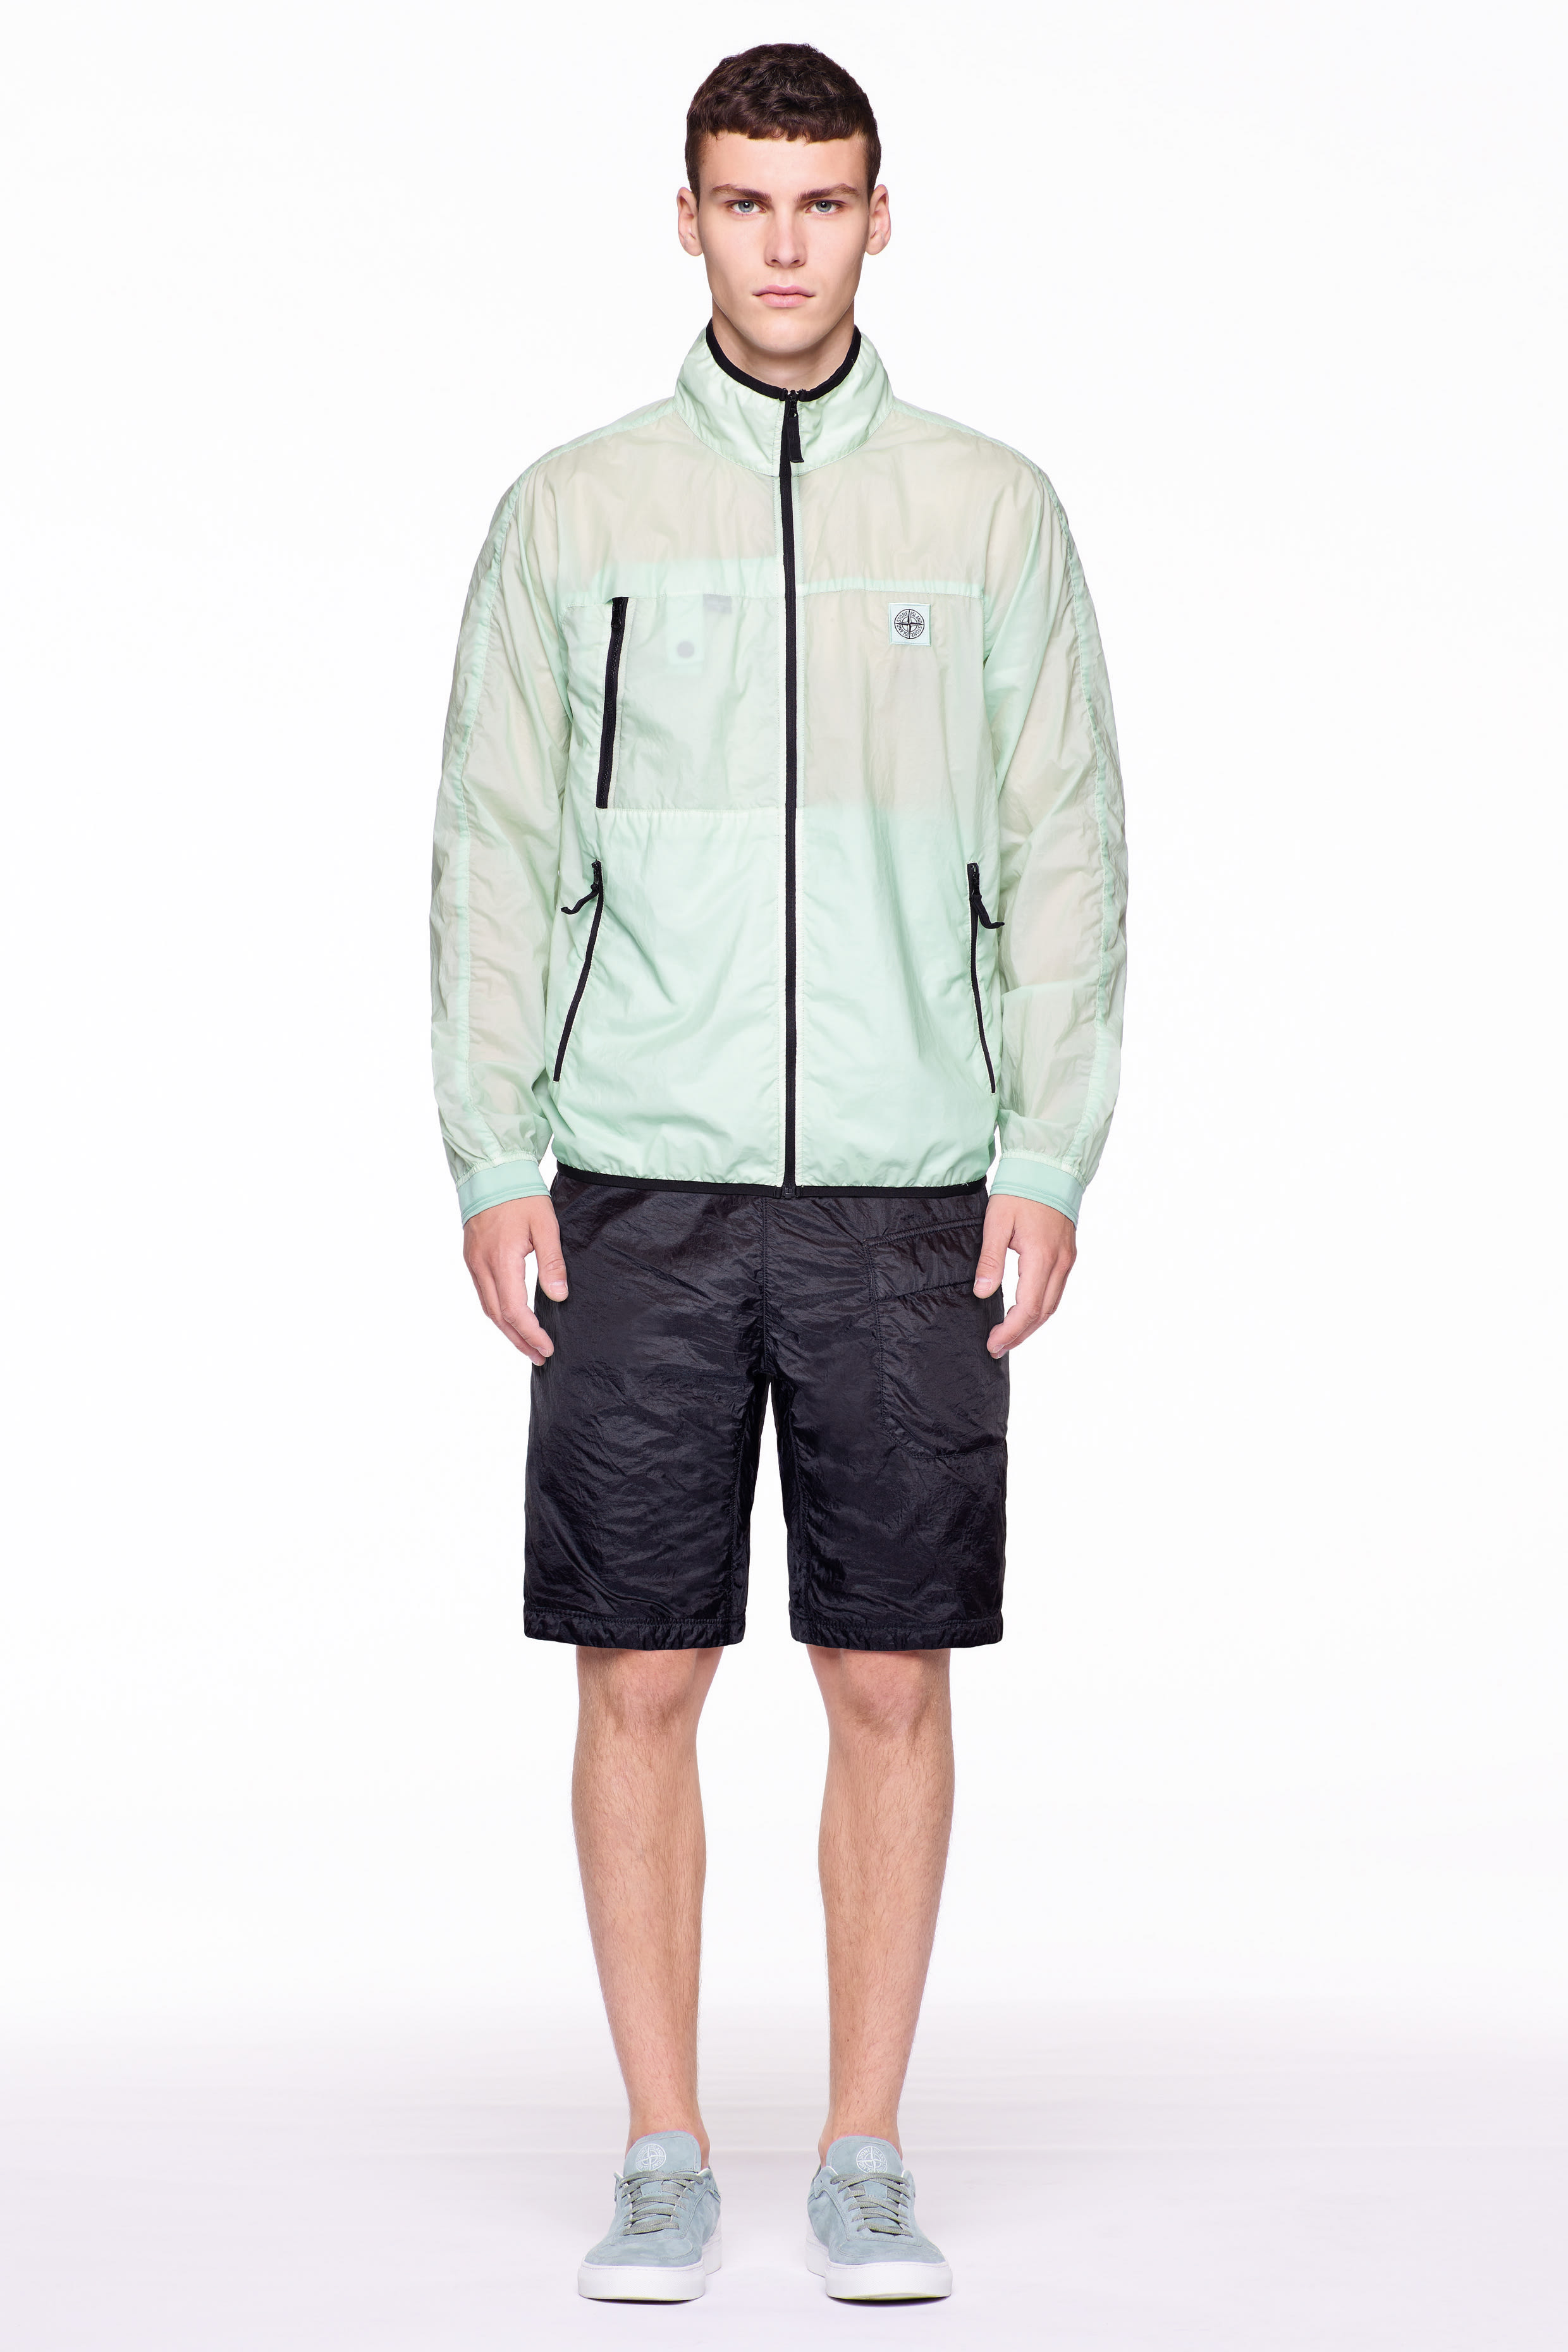 ss18-si26